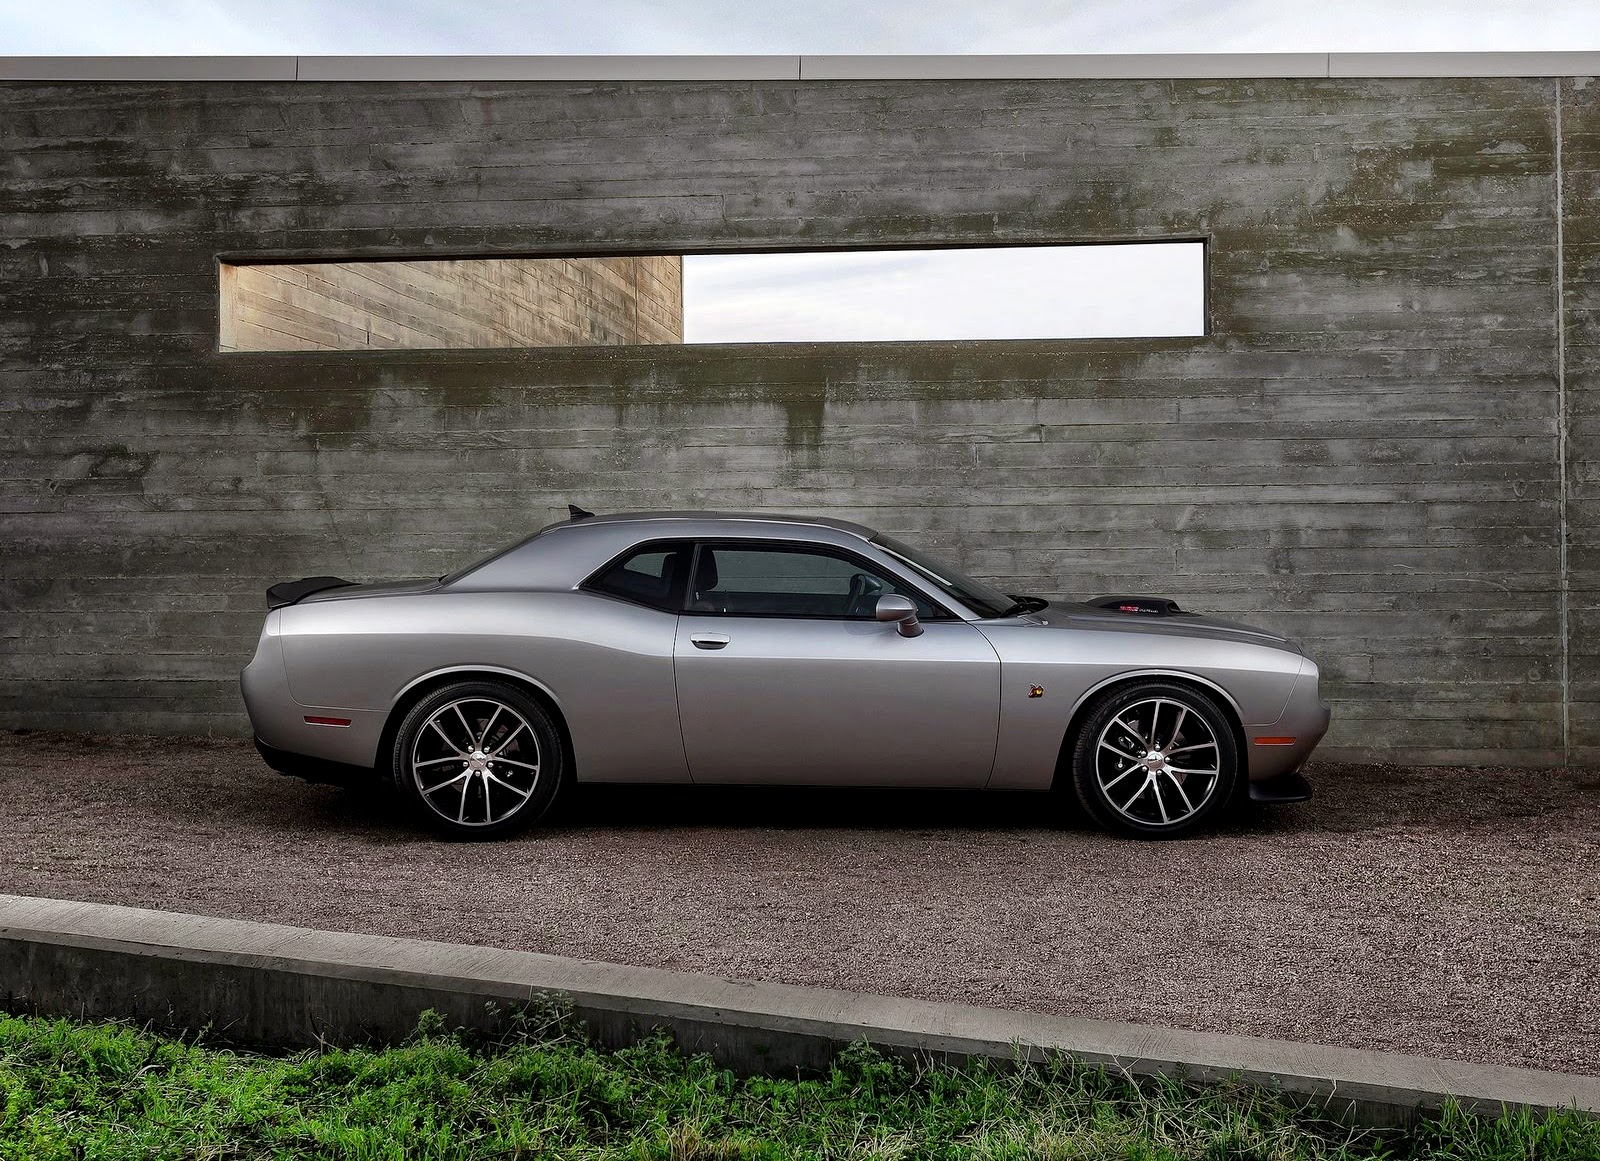 2015 Dodge Challenger price and redesign | 2015 New Cars ...